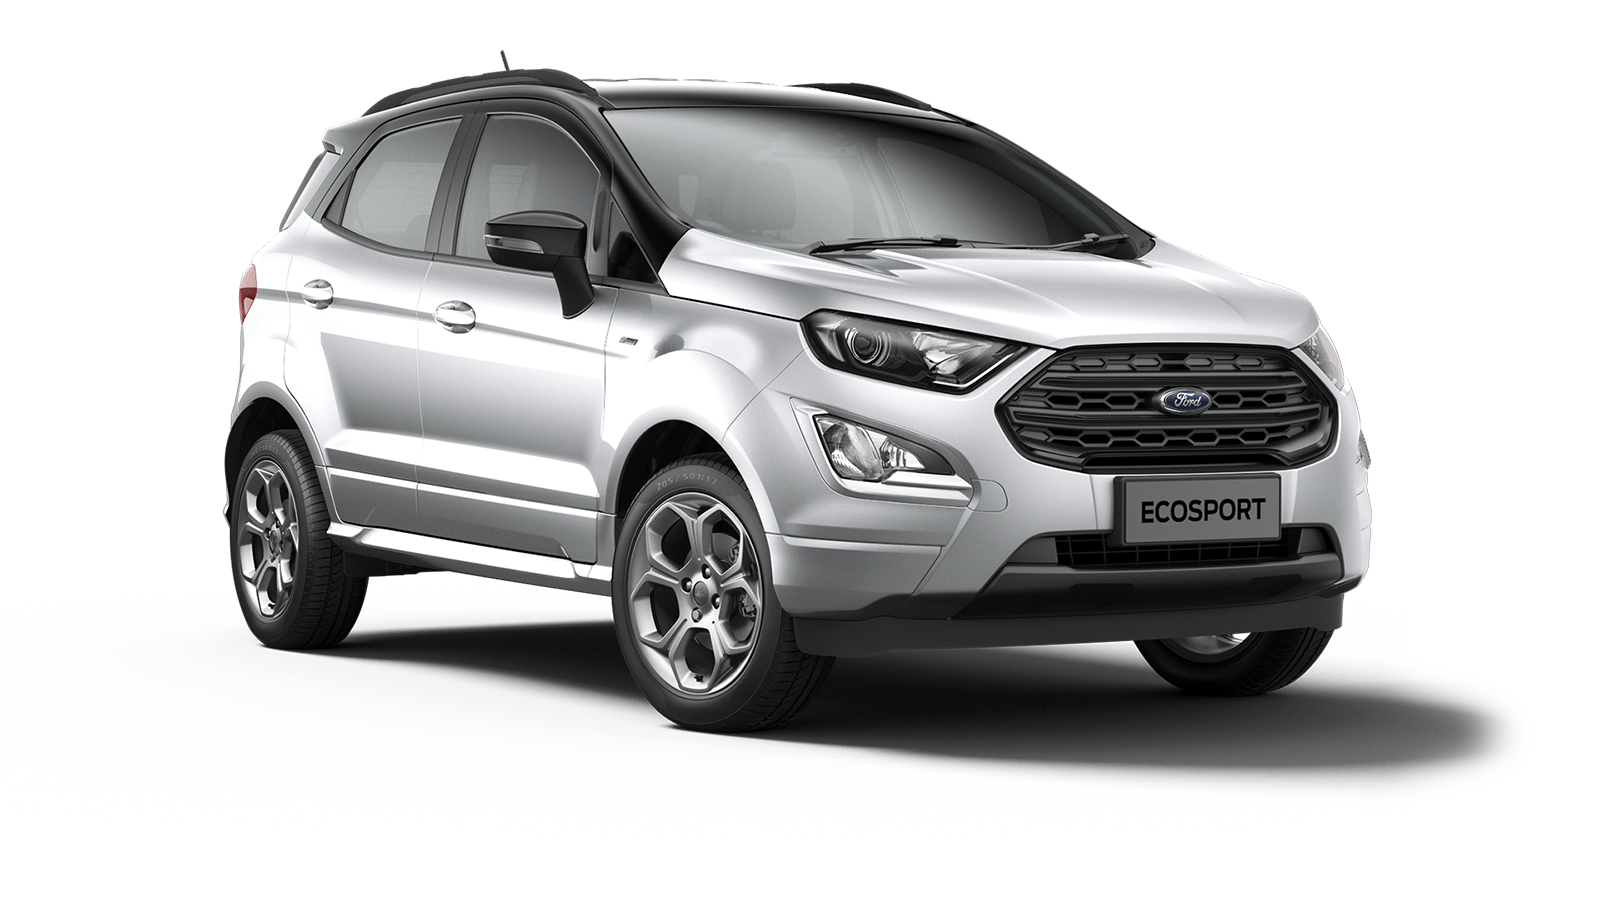 https://www.dealerinternet.co.uk/images/B515%20ECOSPORT/2019/5%20Door/ST-Line/MOONDUST-SILVER.png